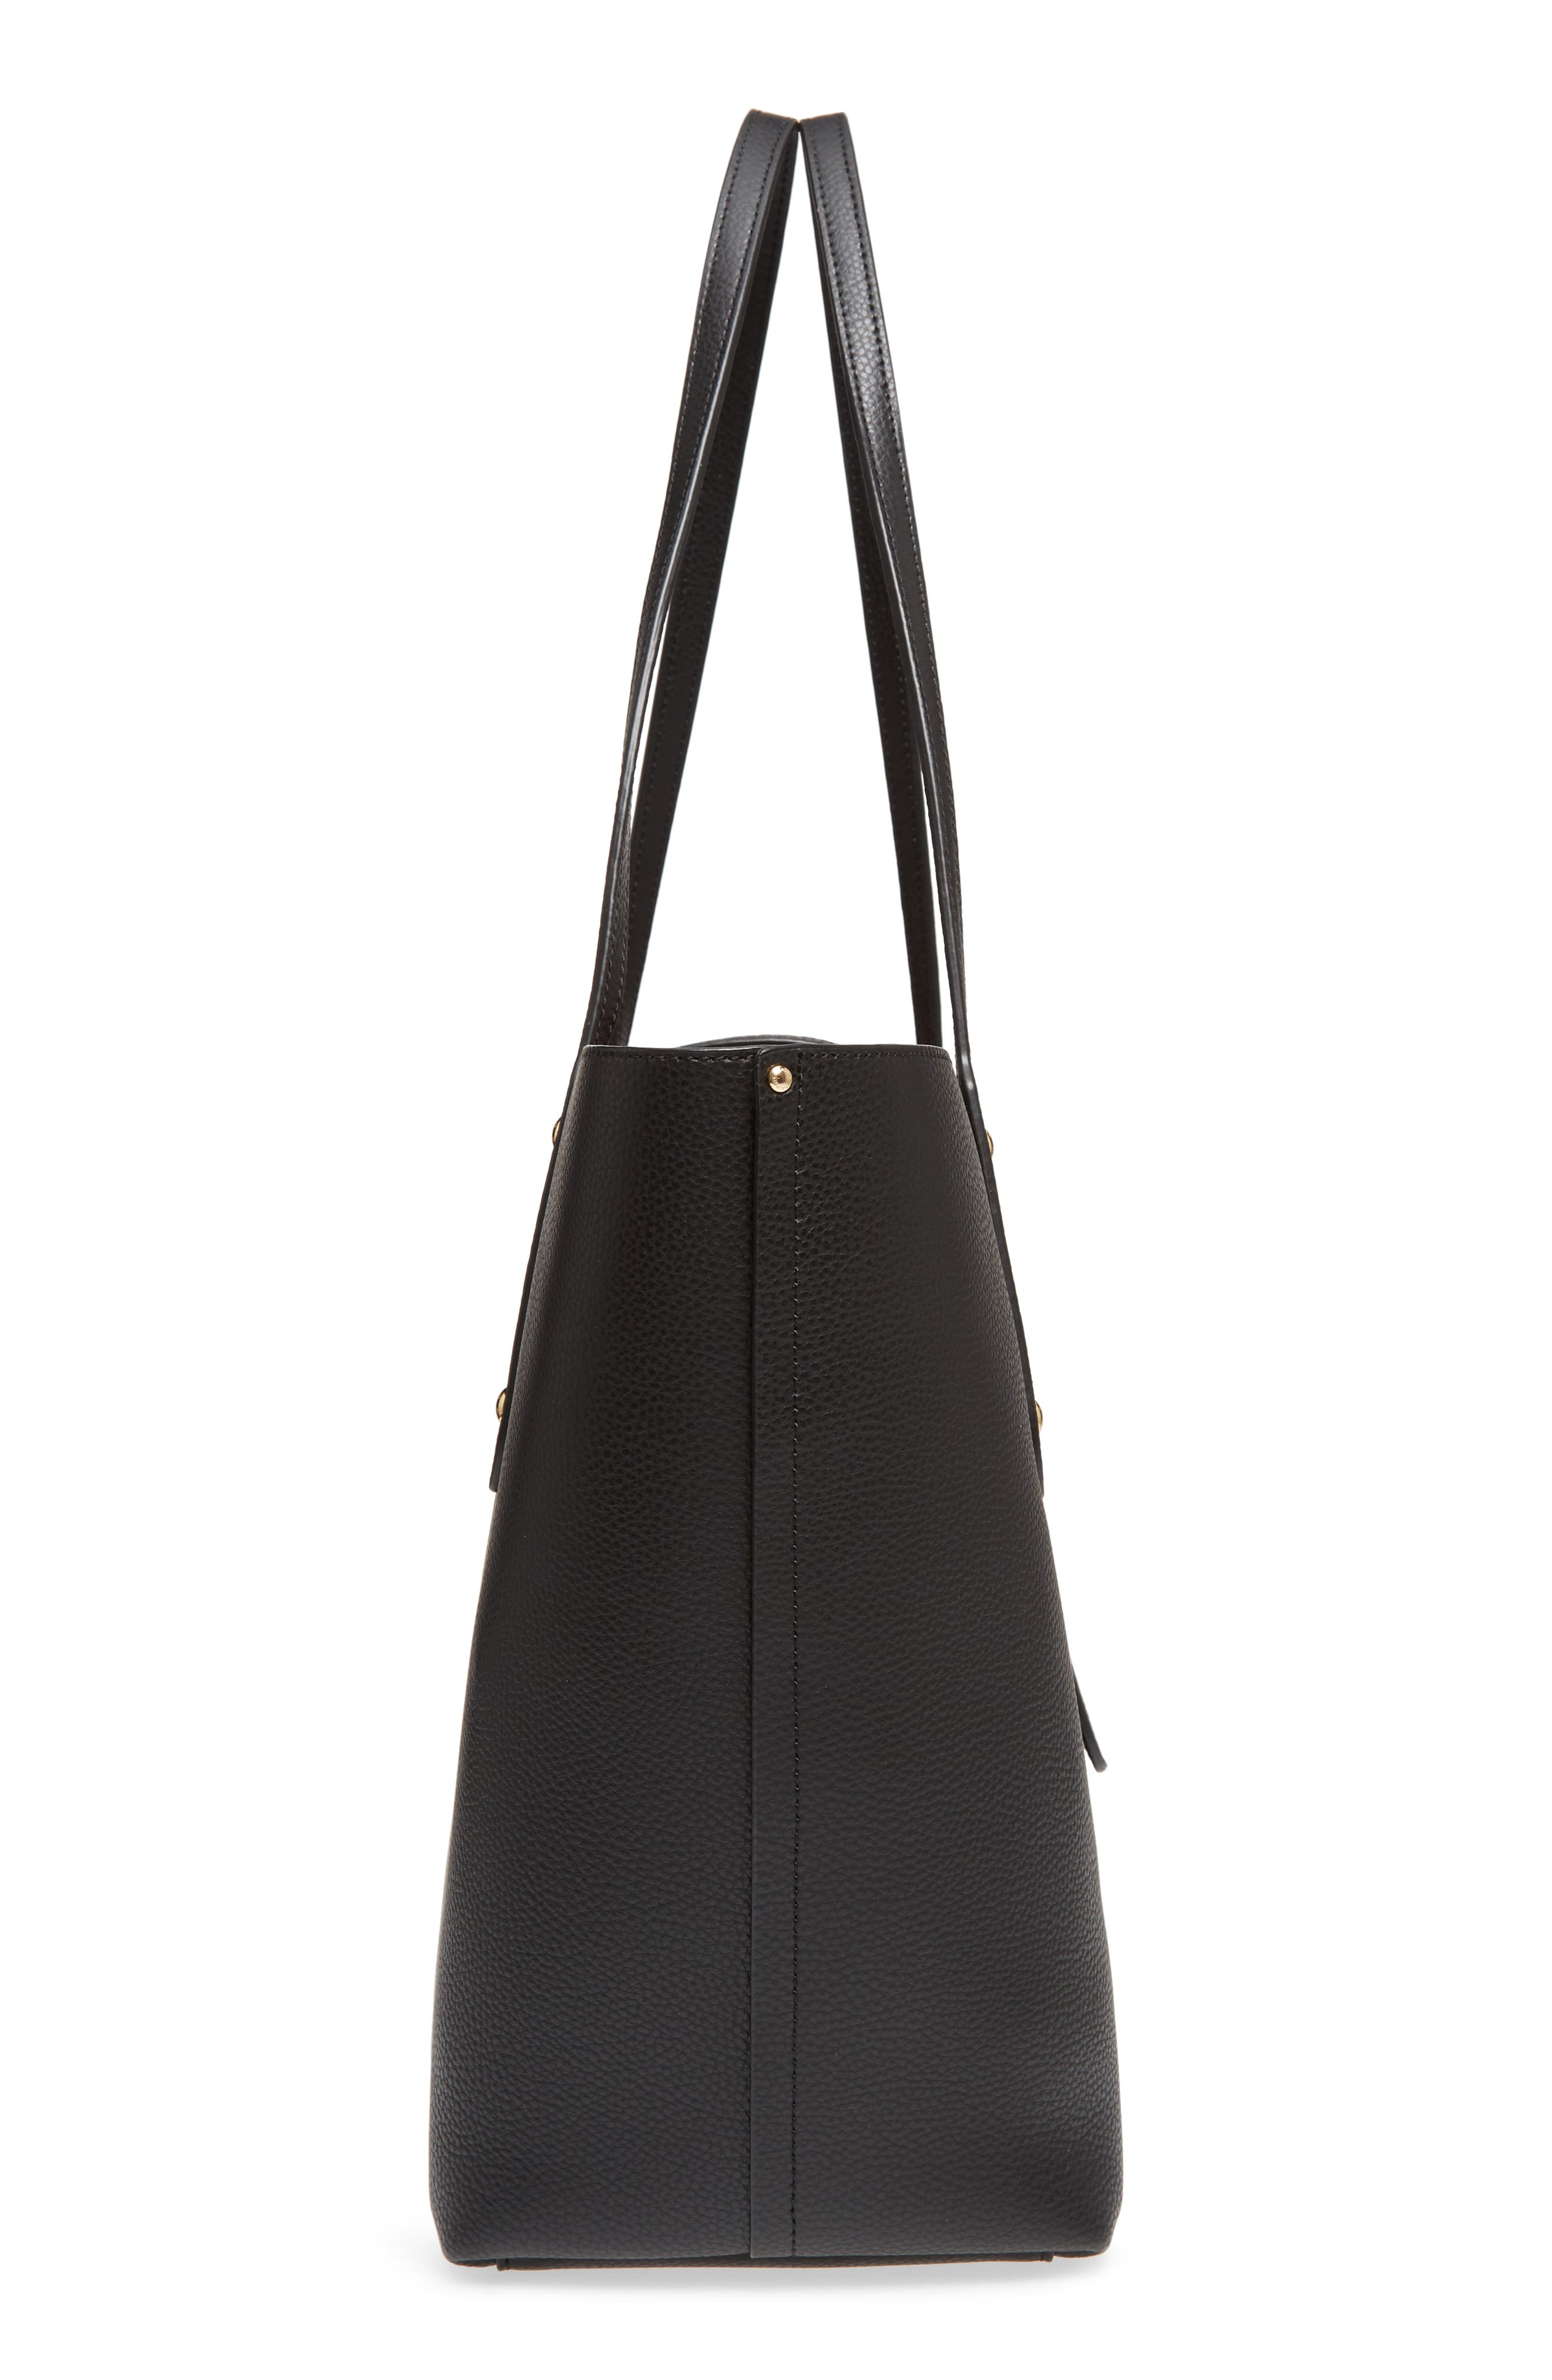 Market Pebbled Leather Tote by Coach